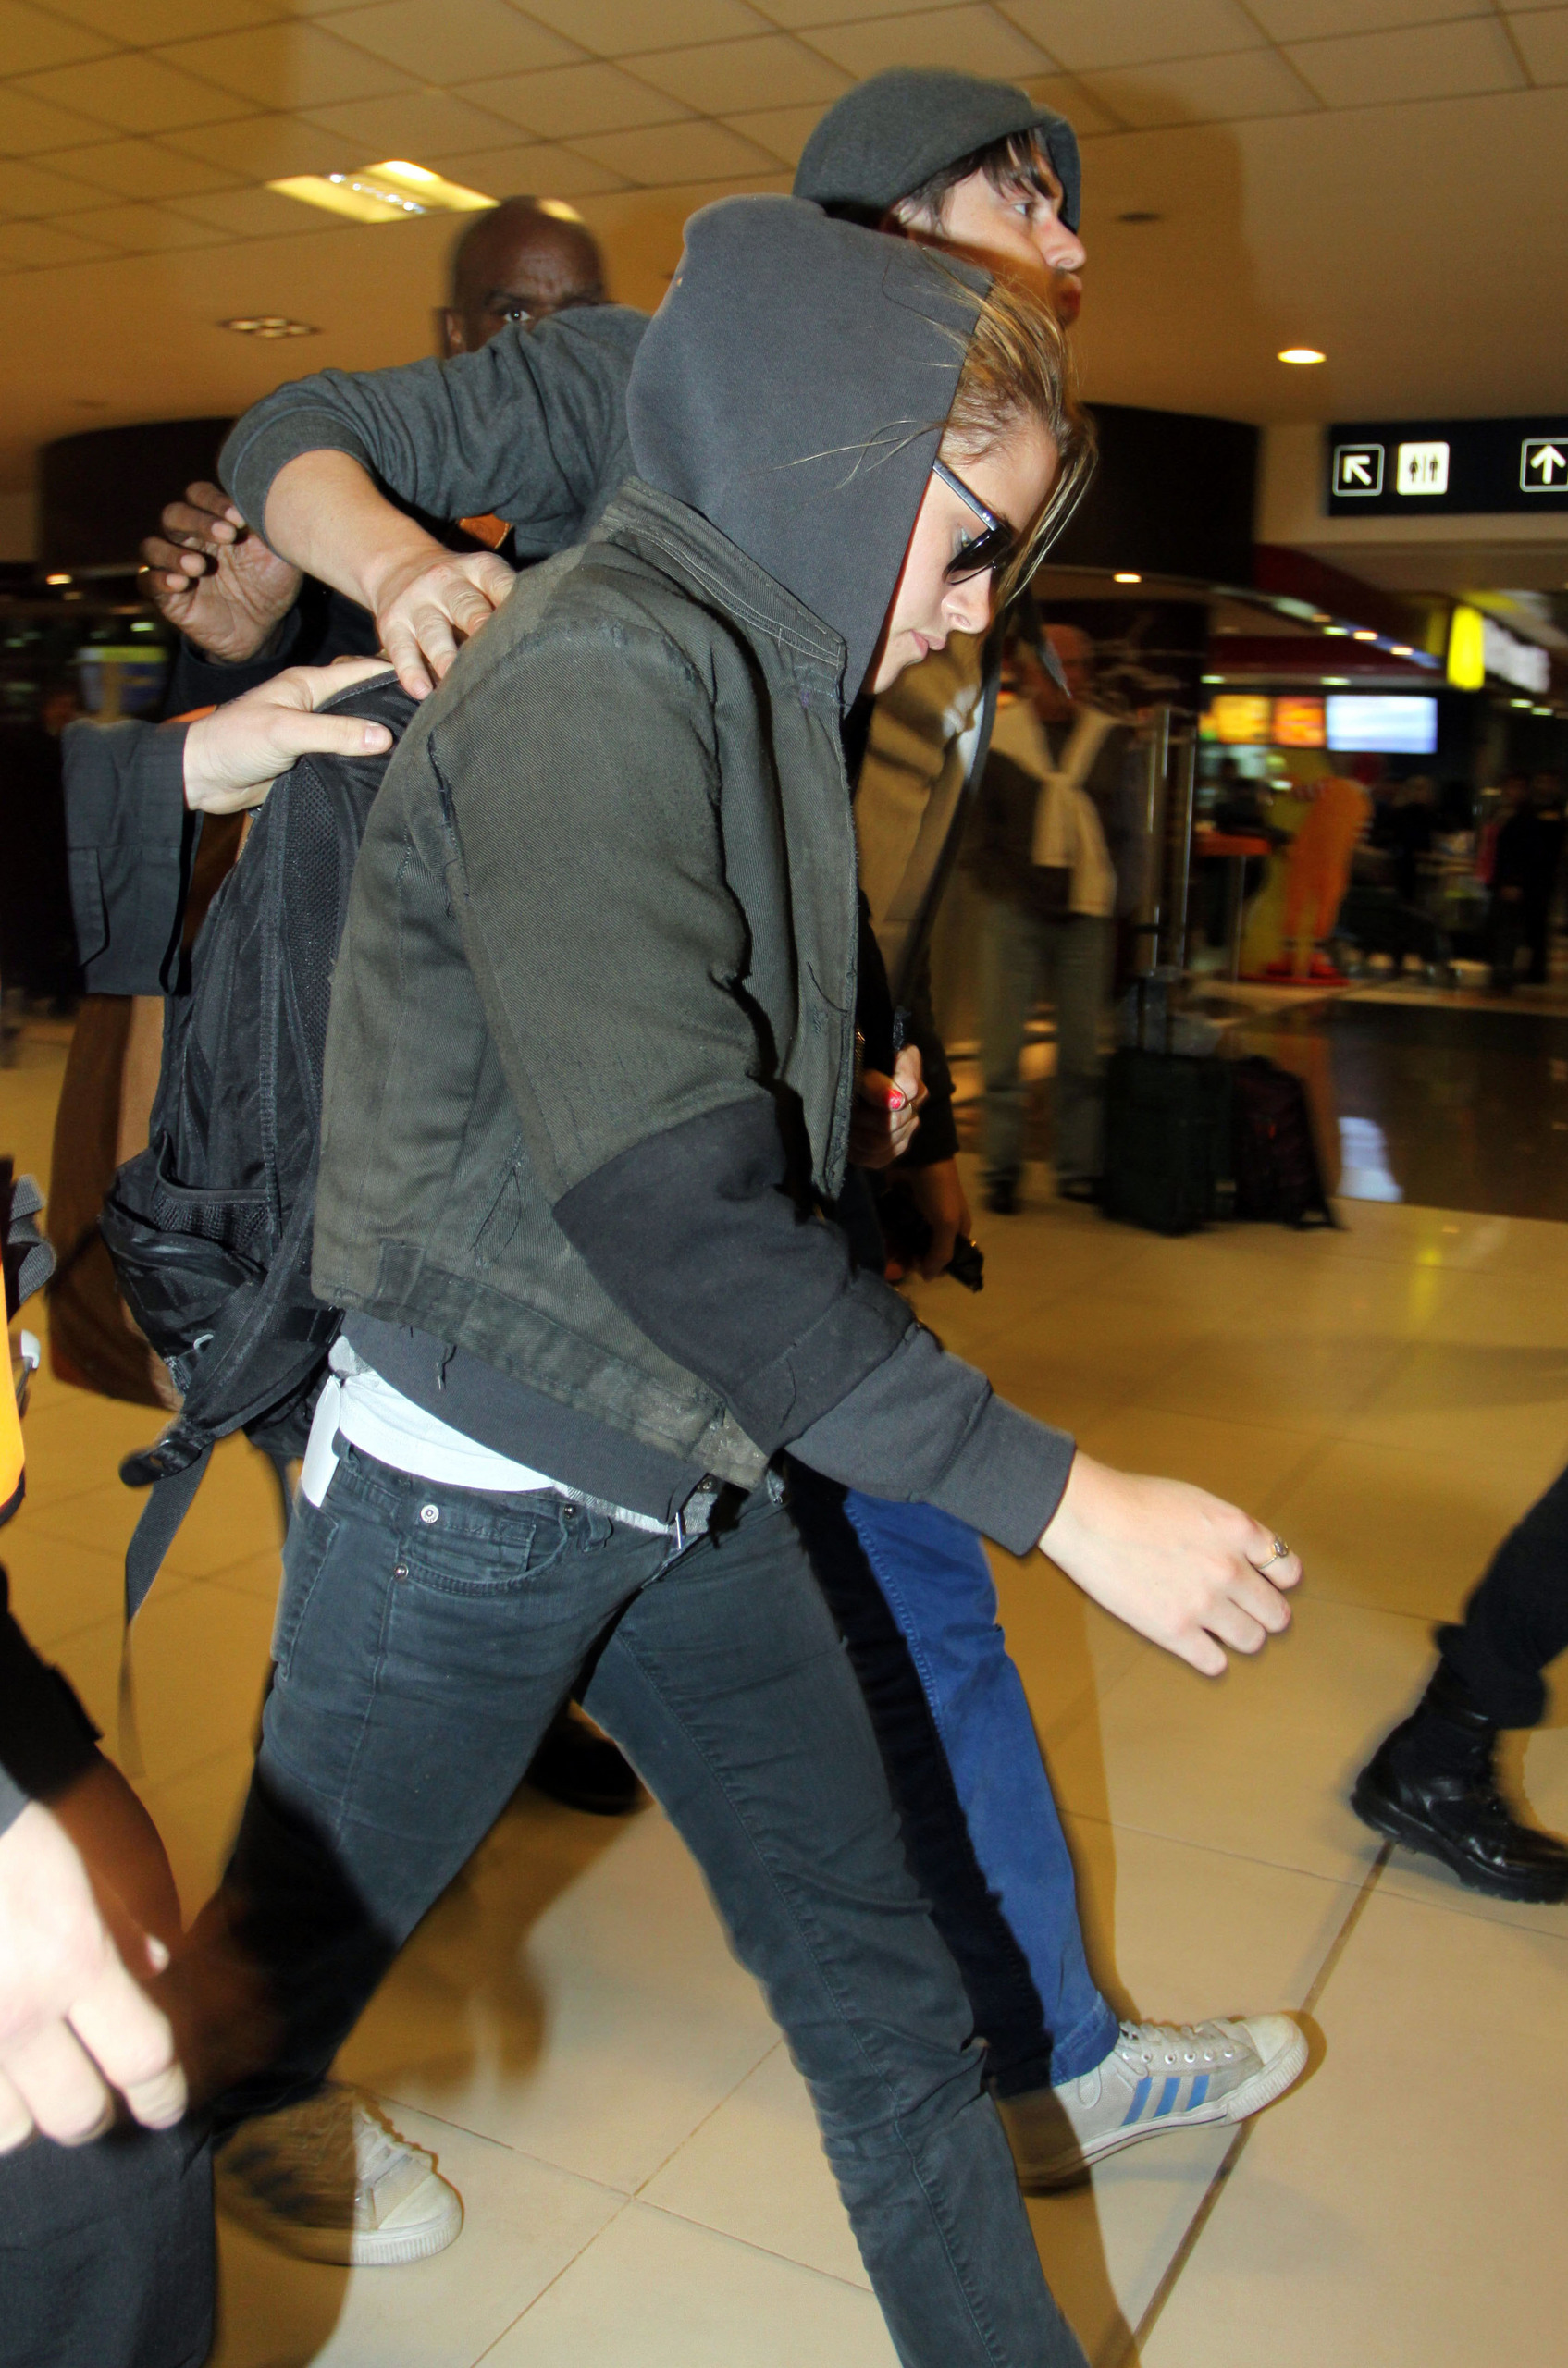 Kristen at the airport